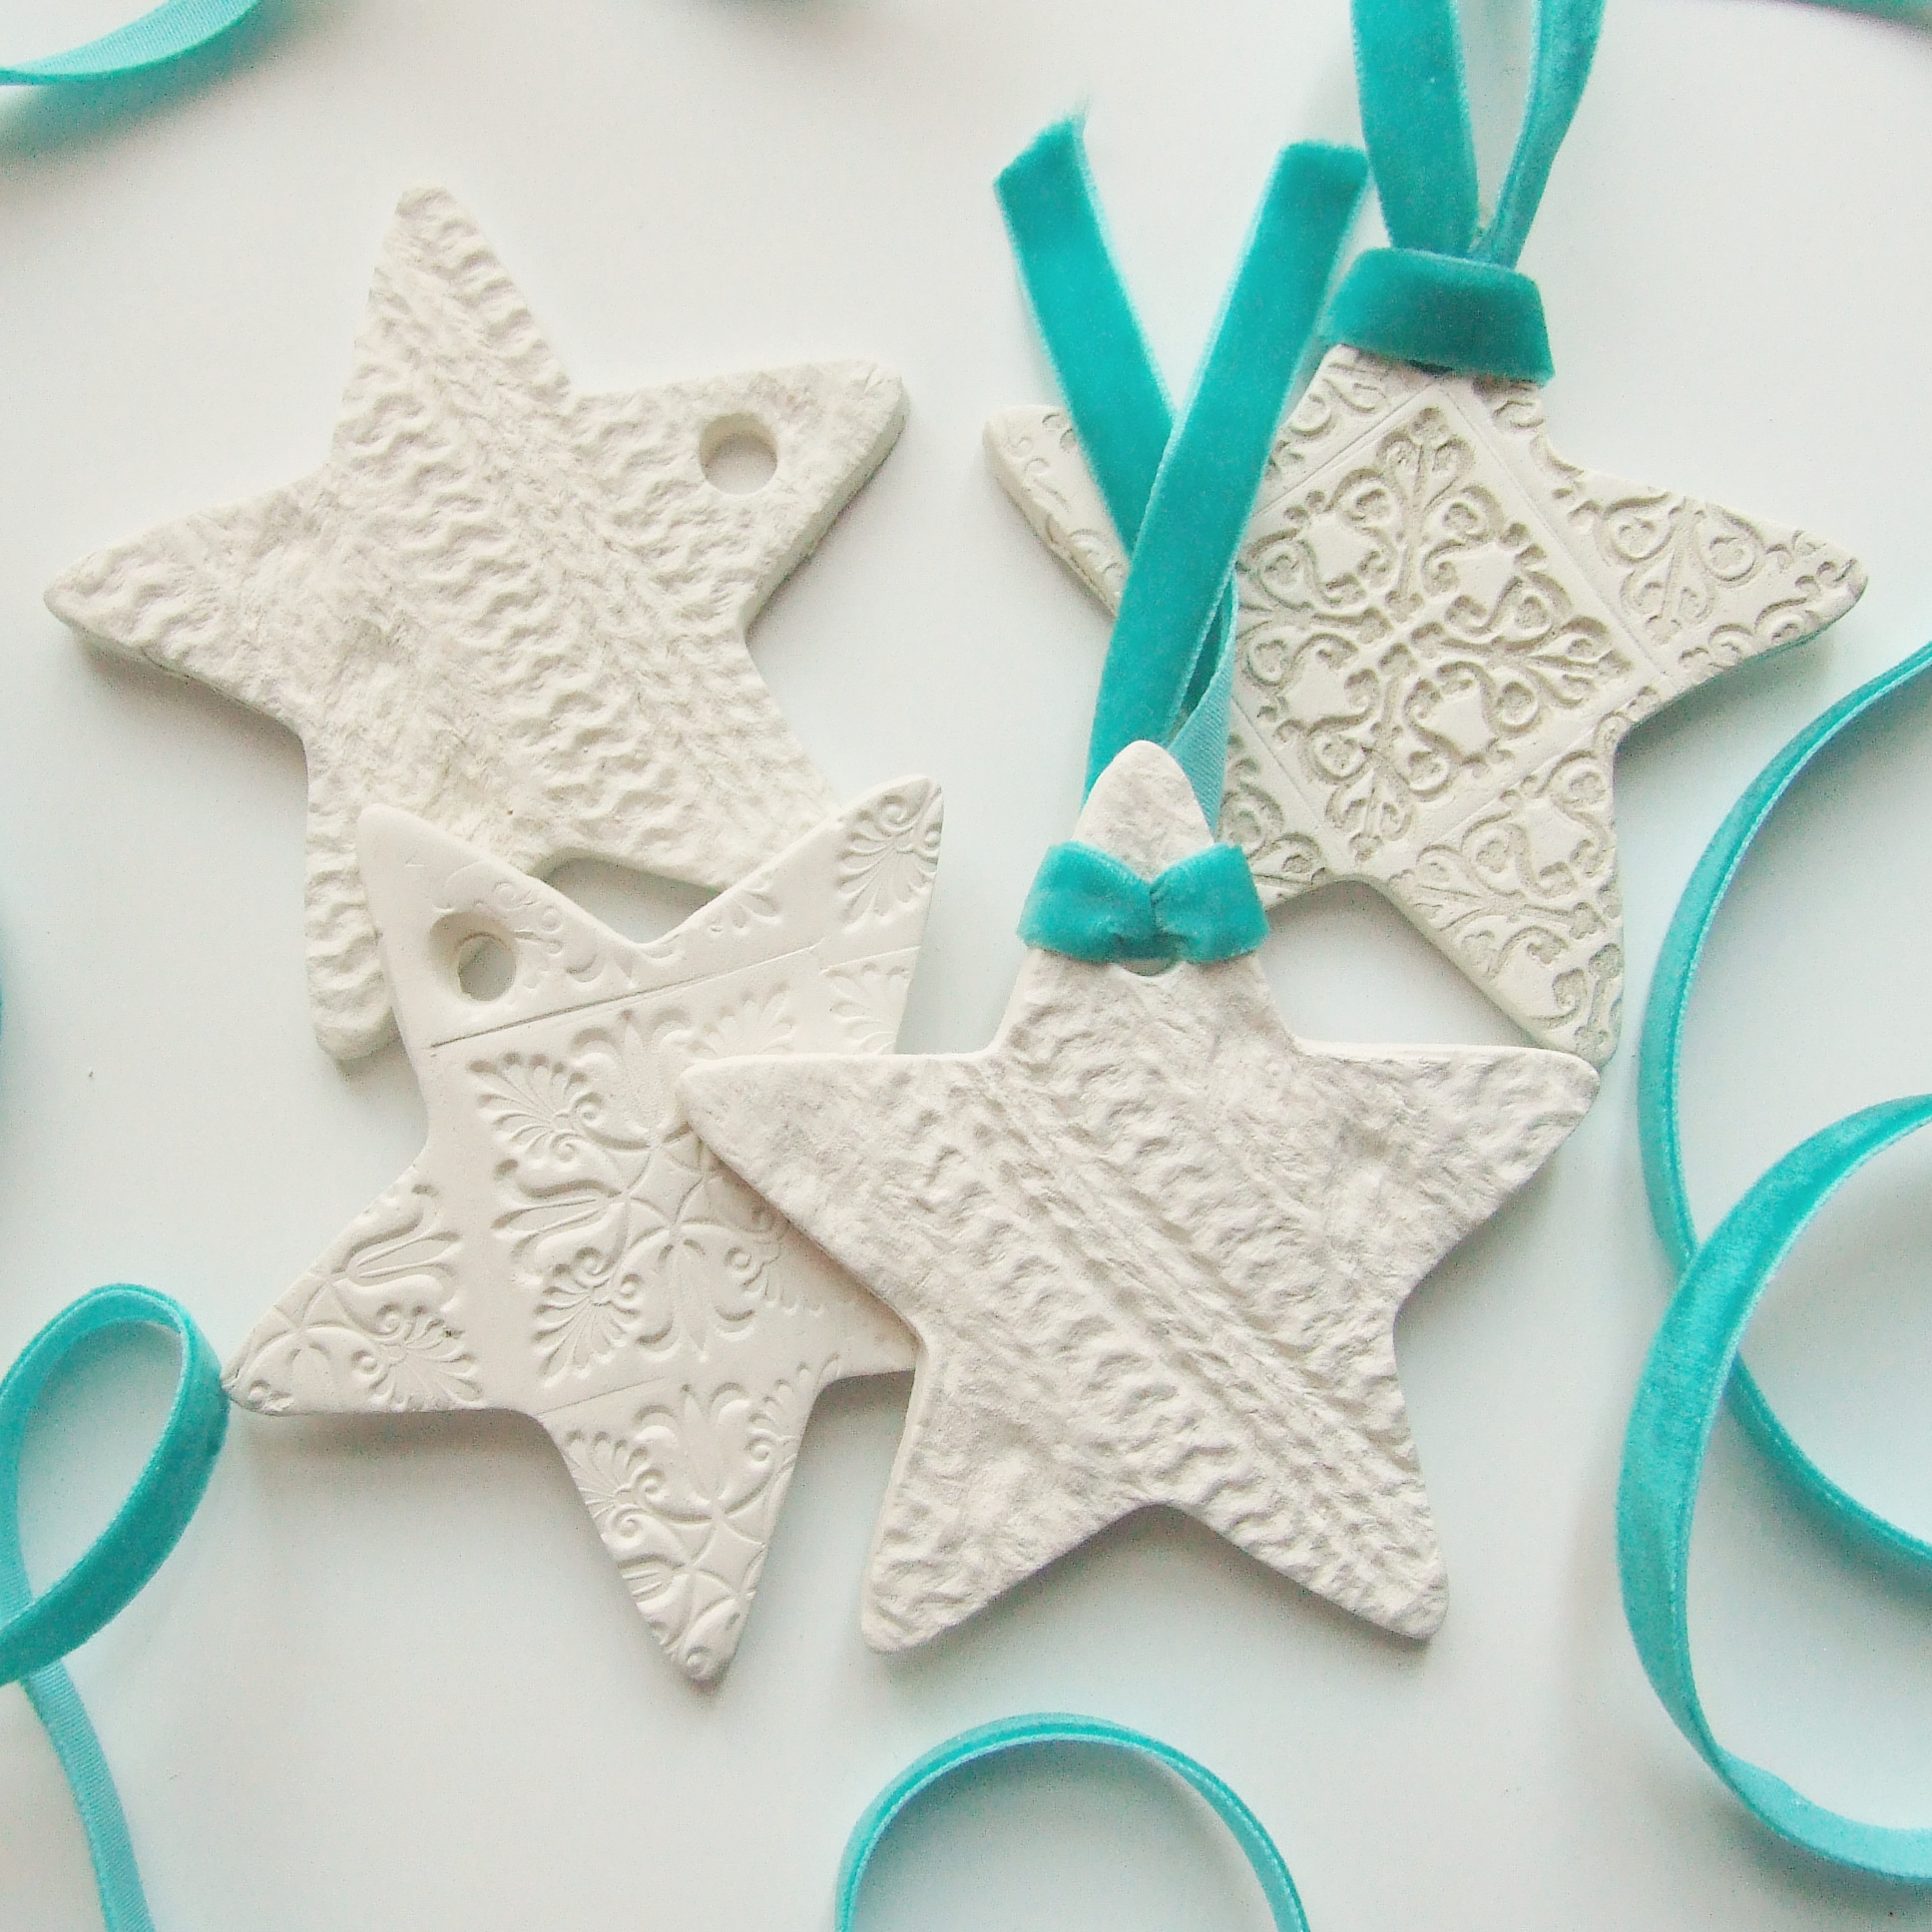 Picture of Embossed Clay Star Christmas Decorations.